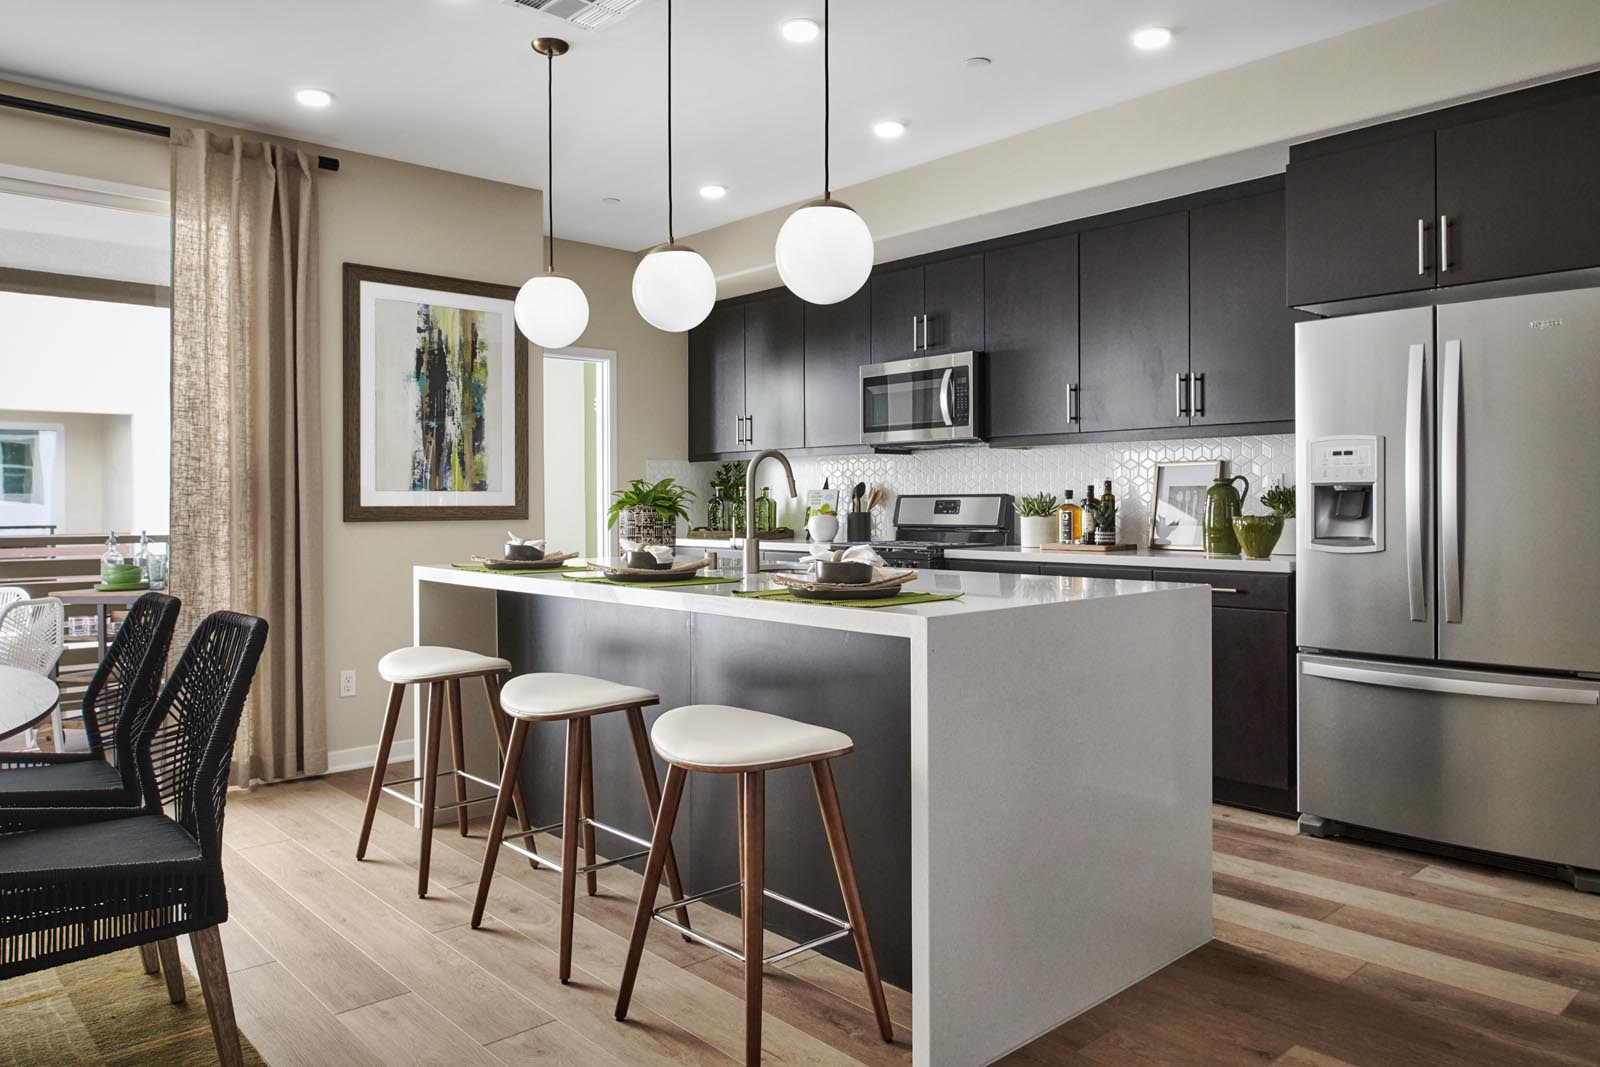 Kitchen | Residence 3 | Enliven | New Homes in Rancho Cucamonga, CA | Van Daele Homes